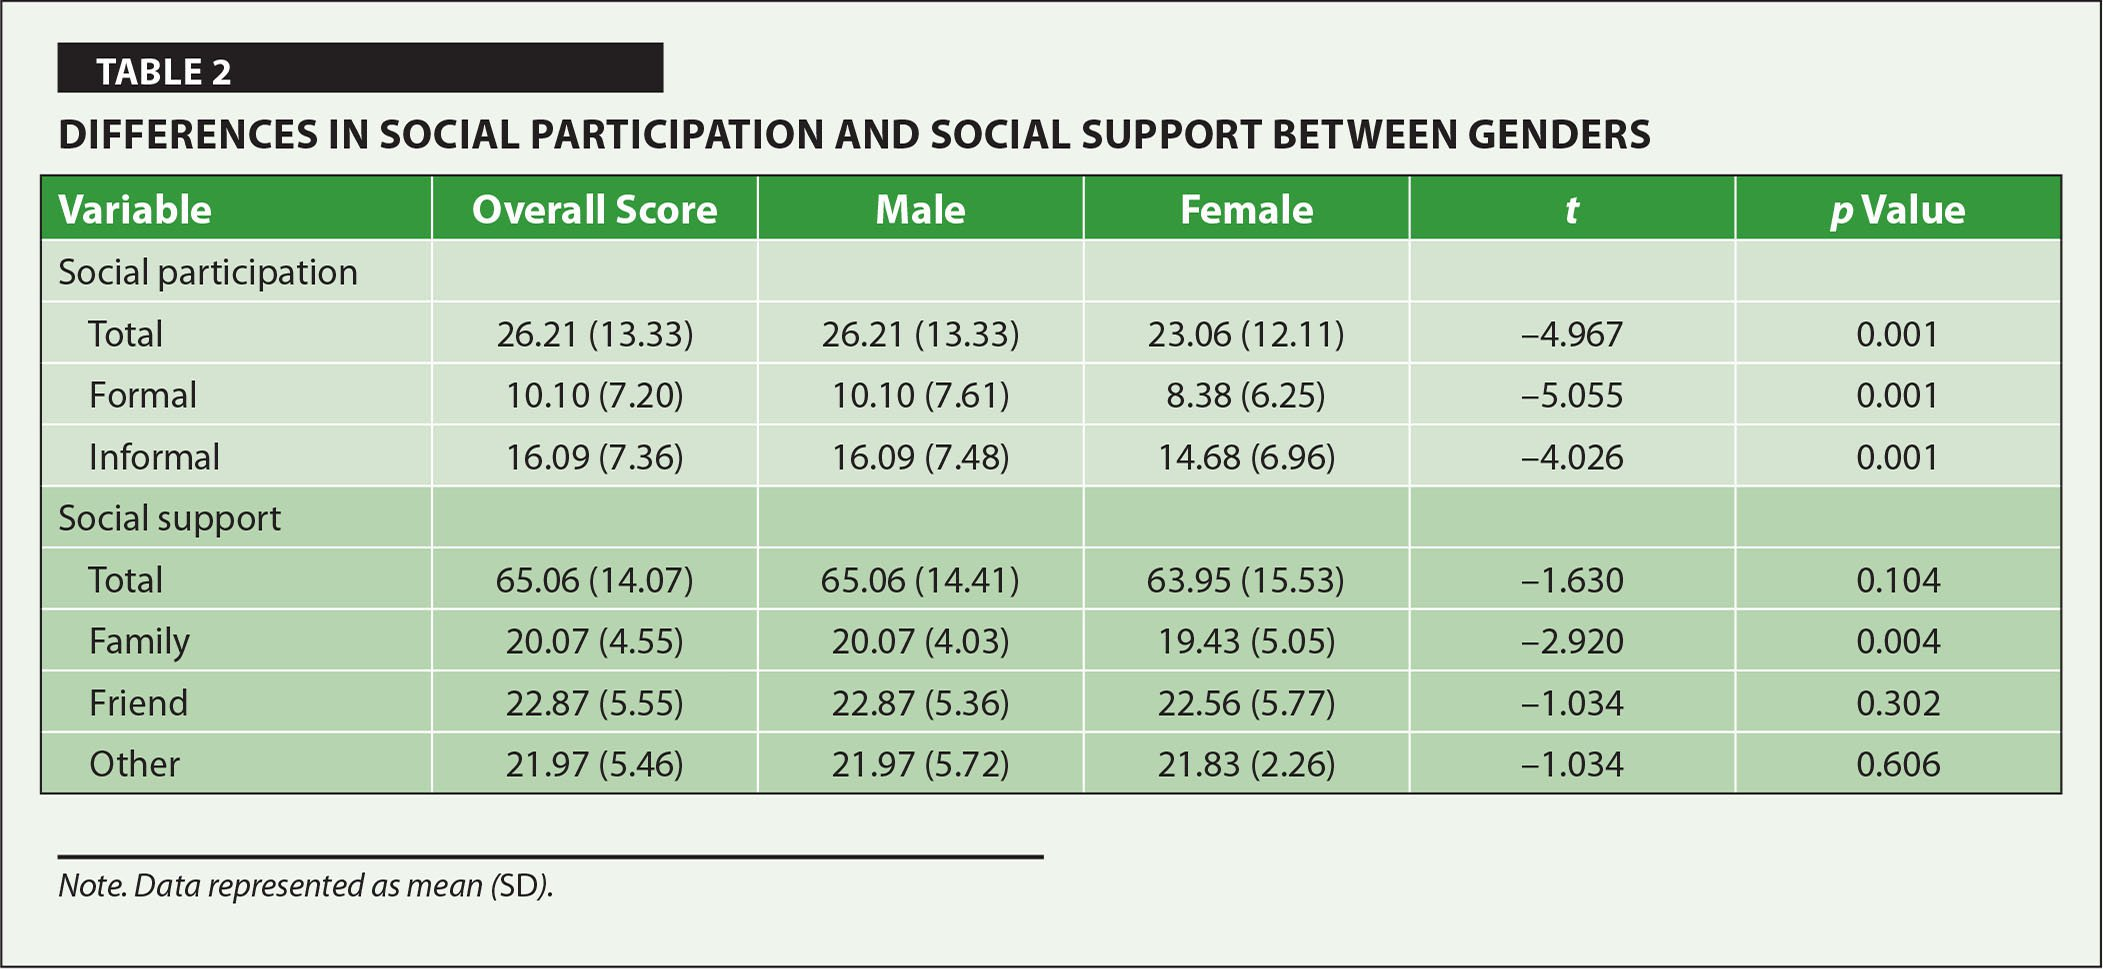 Differences in Social Participation and Social Support Between Genders